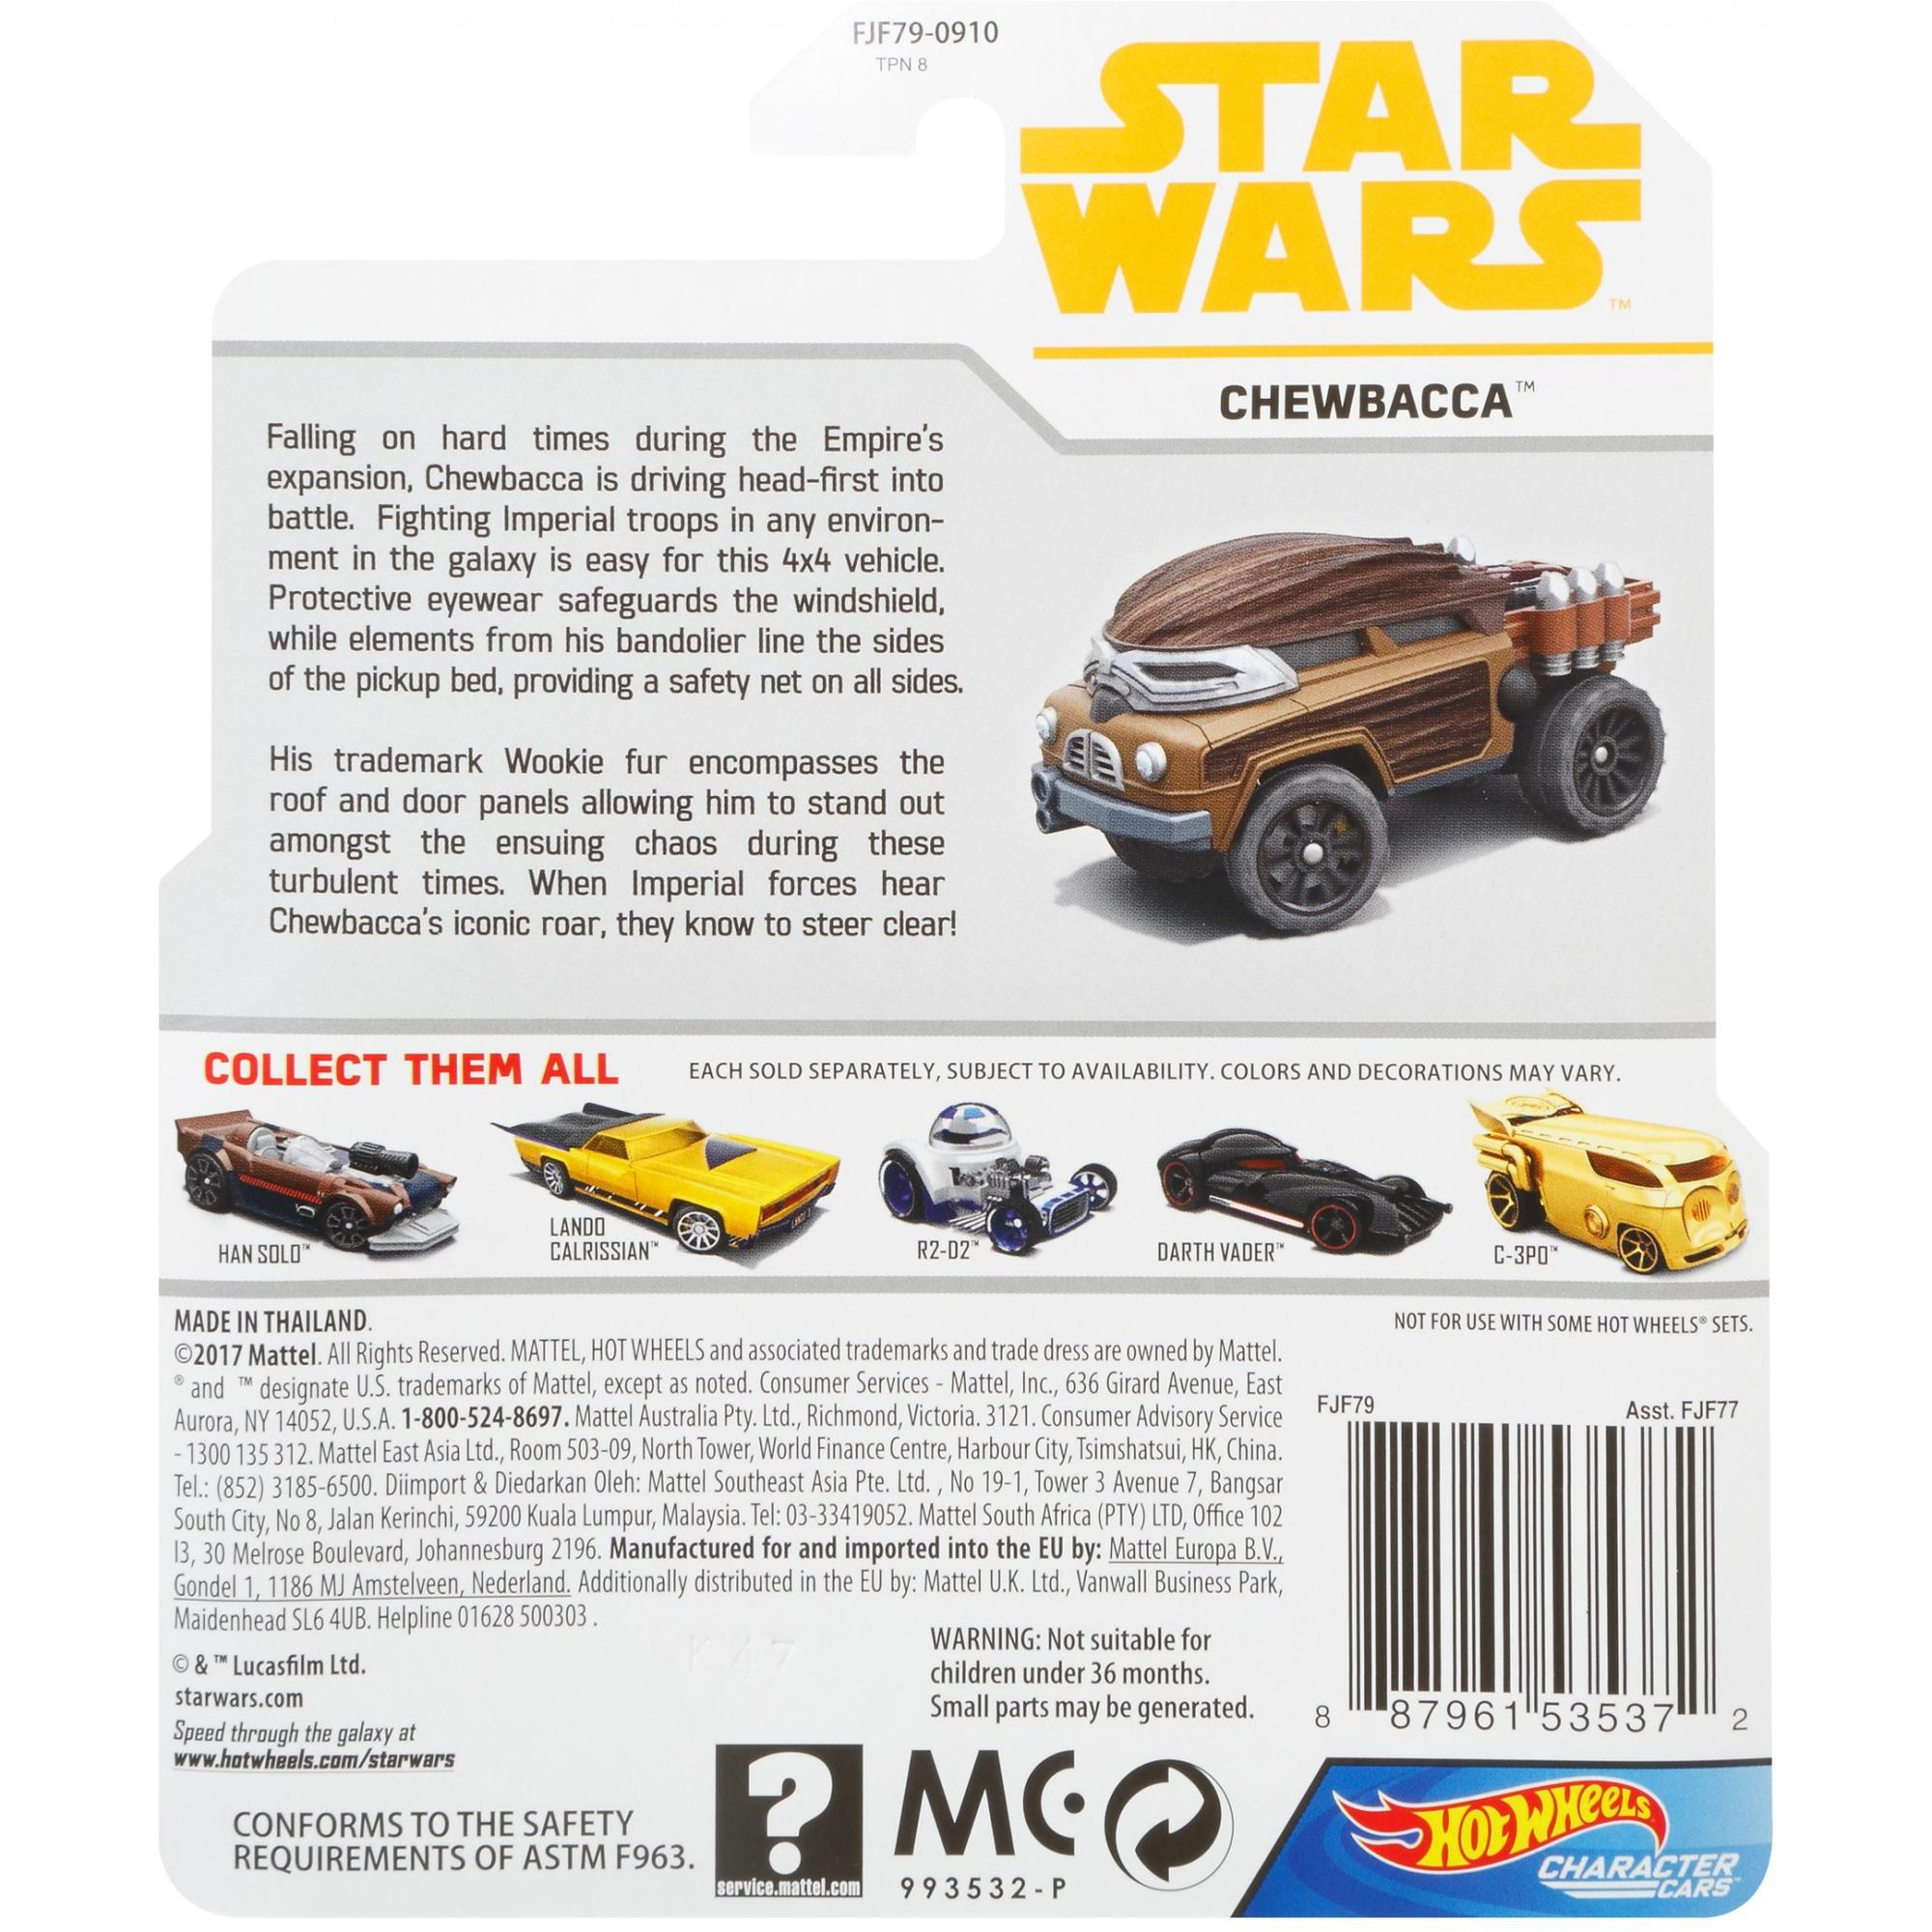 Solo: ASWS HW Chewbacca Character Car 2